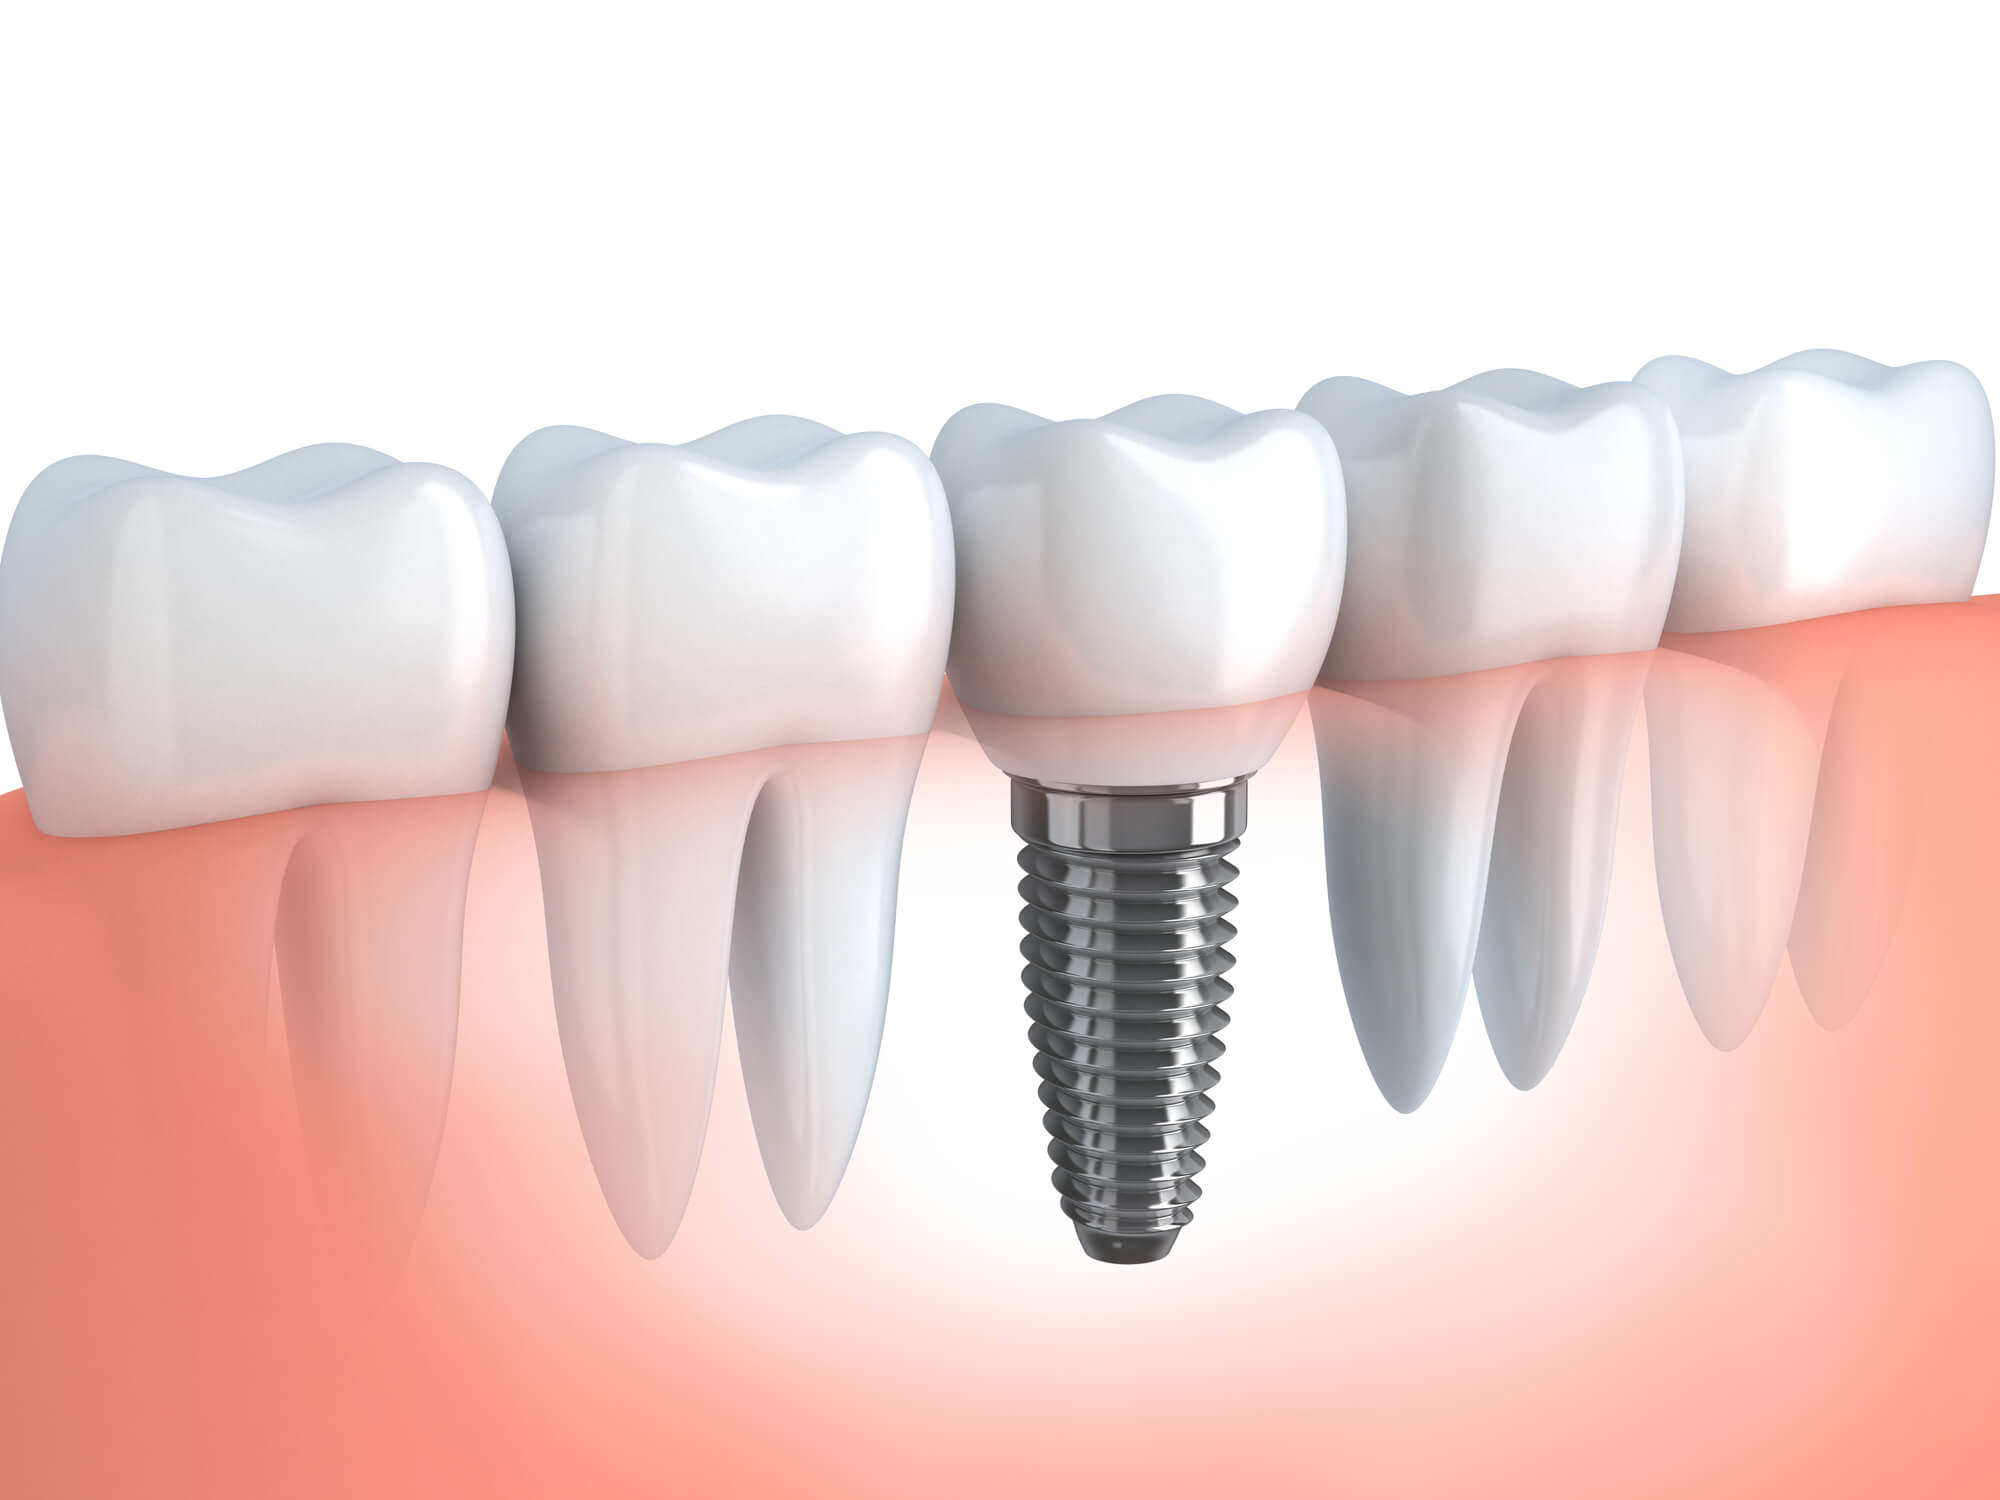 where can I get the best dental implant in doral?